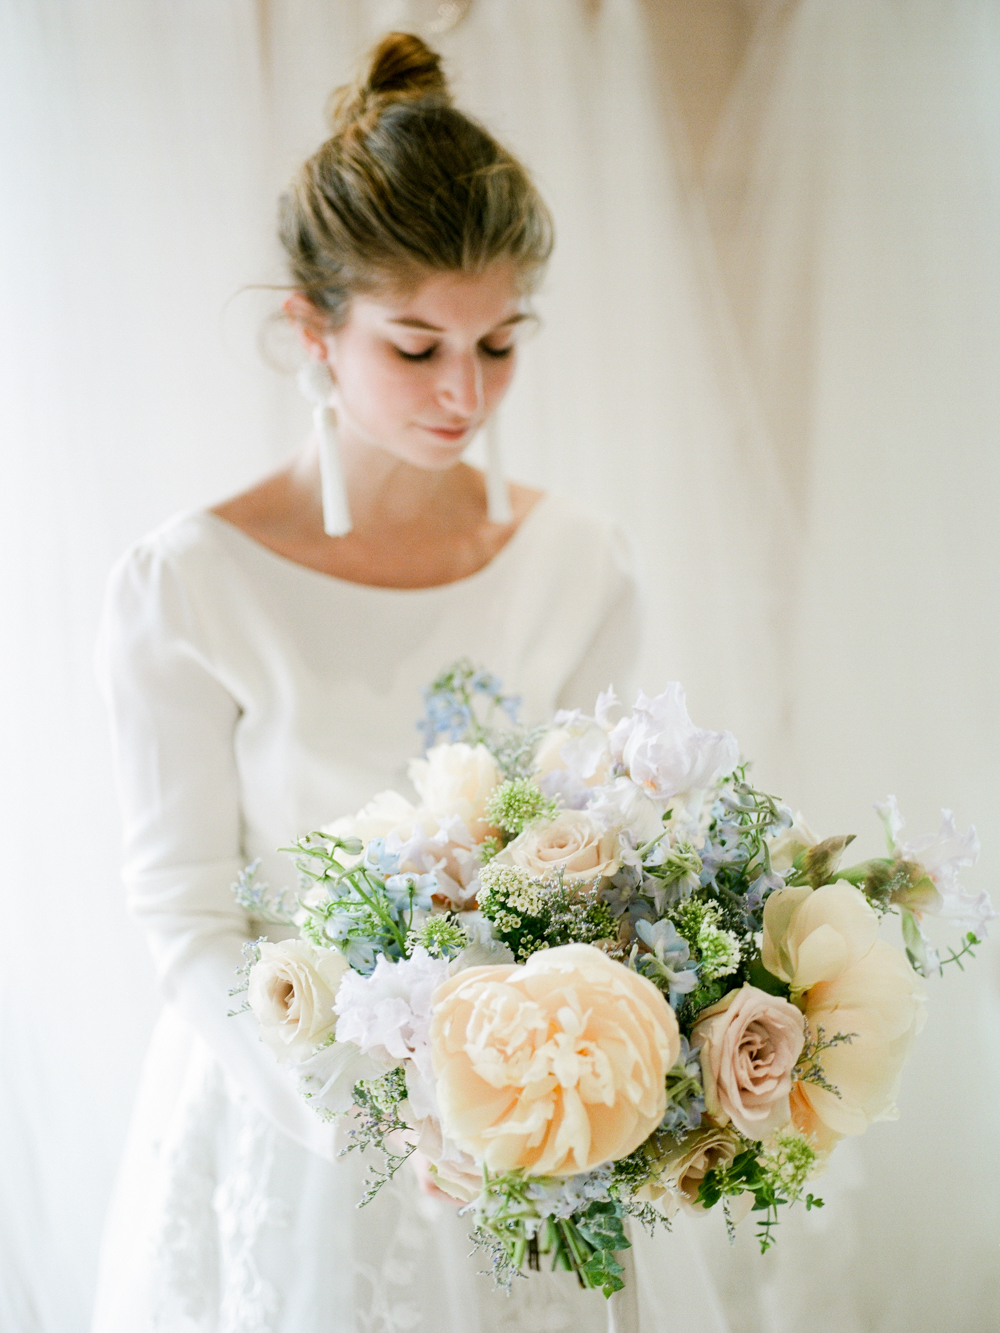 Christine Gosch_Houston wedding photographer_wedding dress styles_Houston wedding boutique_Marchesa wedding dress_ Tara Lauren bridal wedding dress_Alexandra Grecco-10.jpg